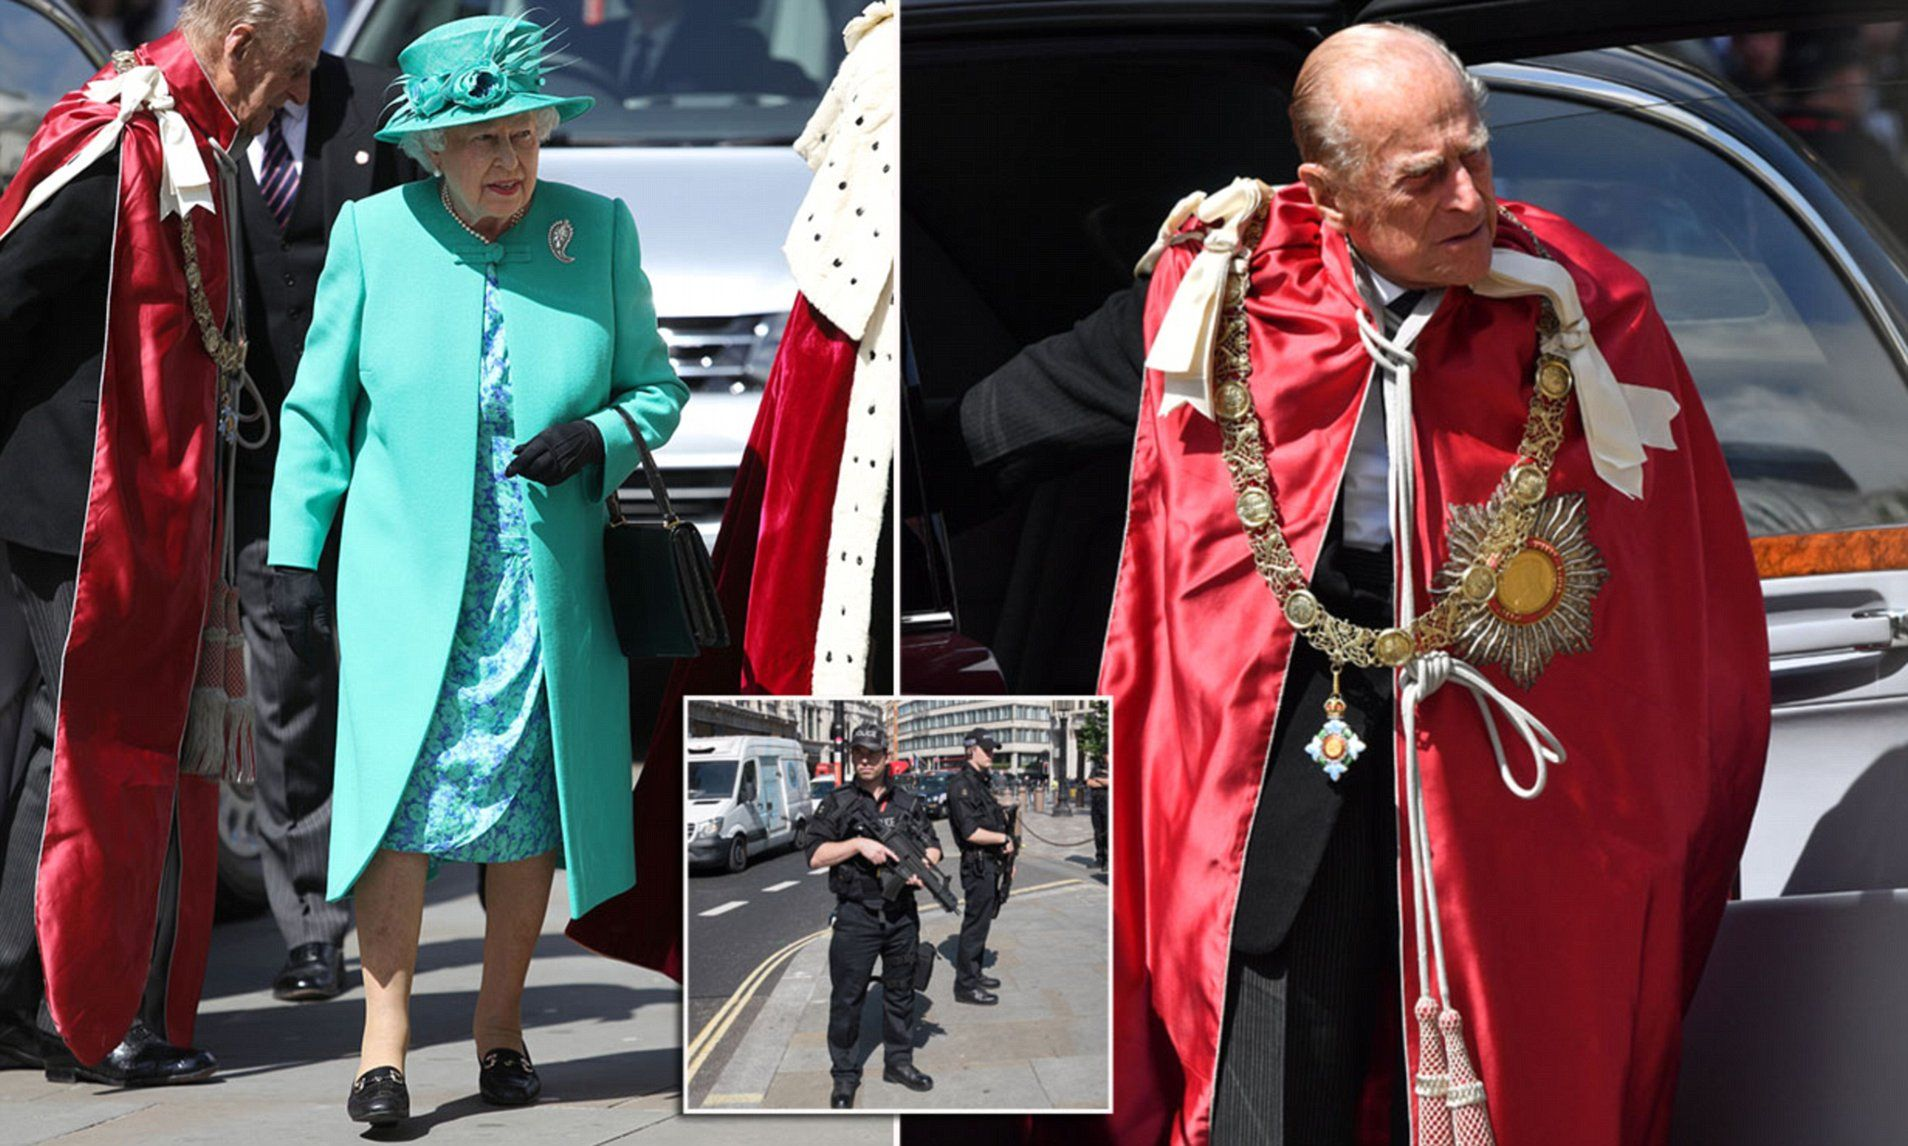 The Queen arrived at St Paul's Cathedral where she led worshippers at a specialservice of dedication and thanks for the Order of the British Empire ahead of its centenary next month.